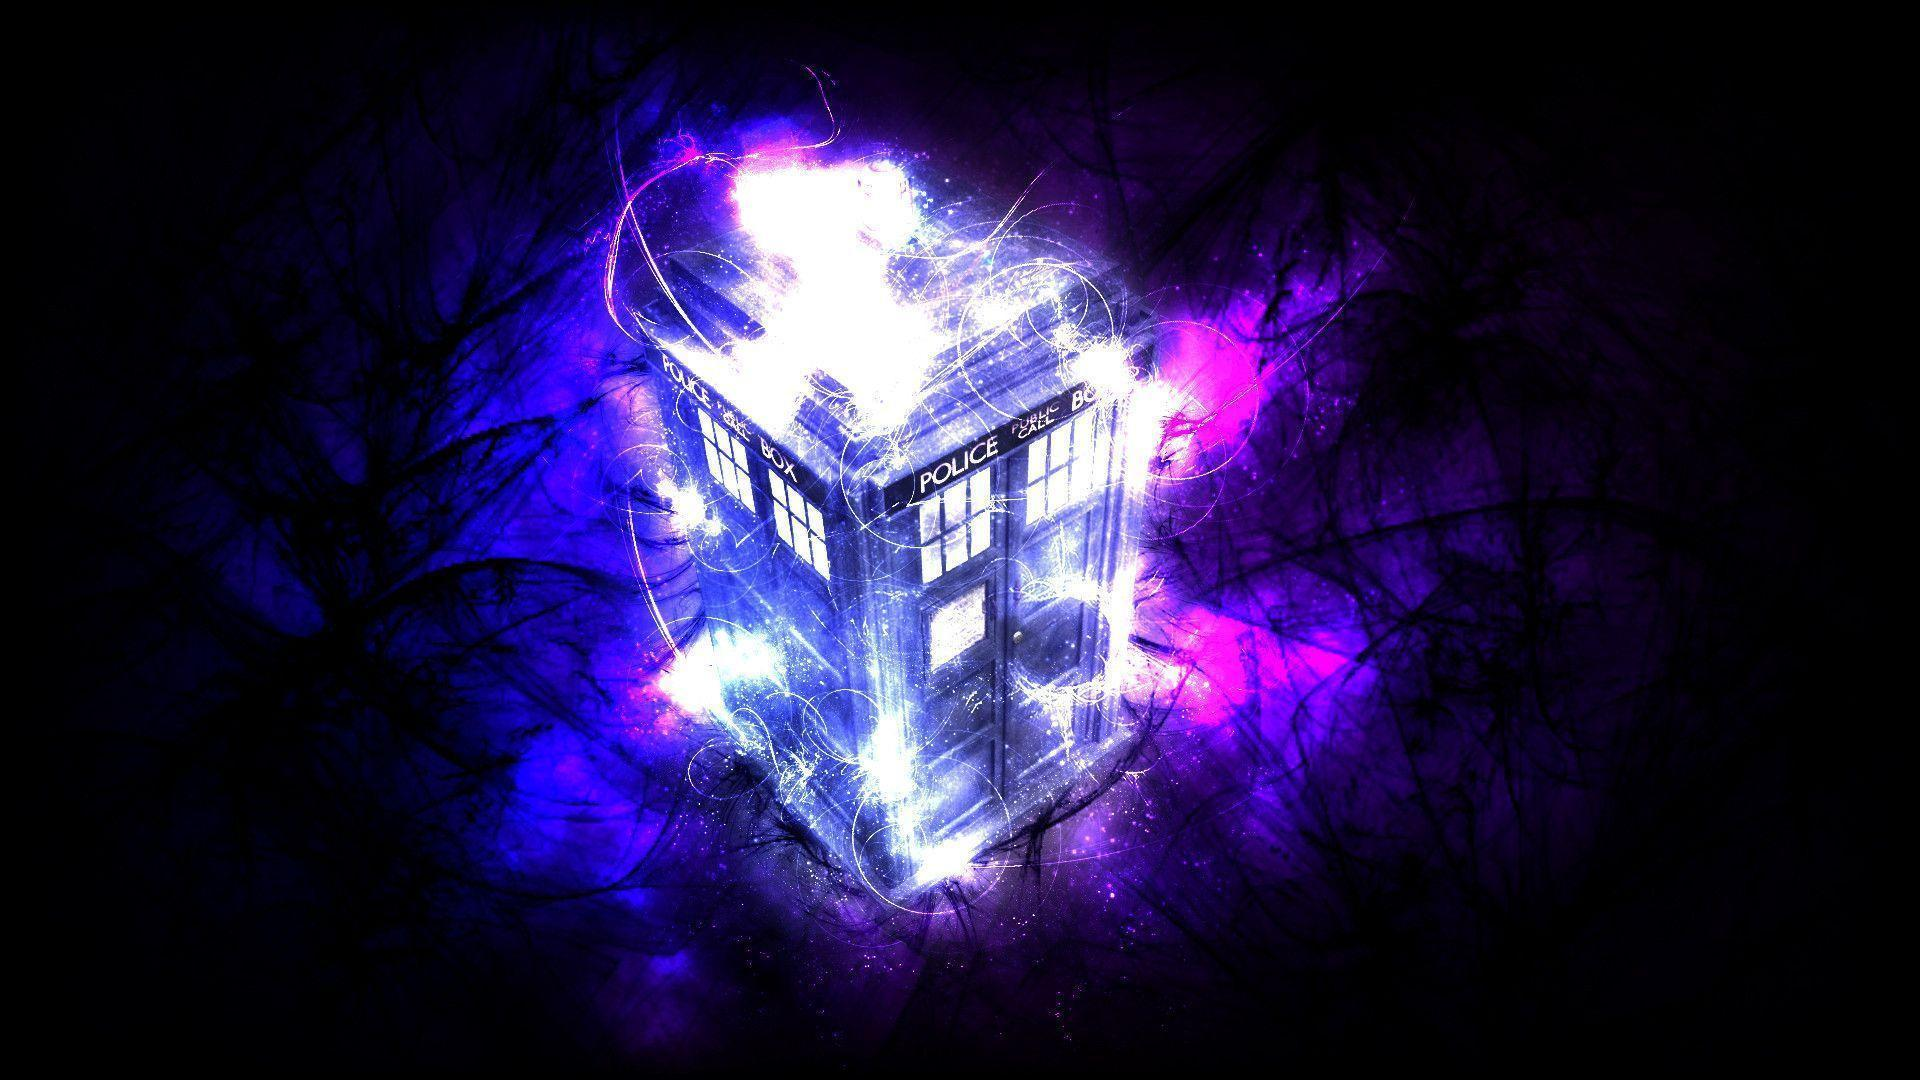 296 Doctor Who Wallpapers